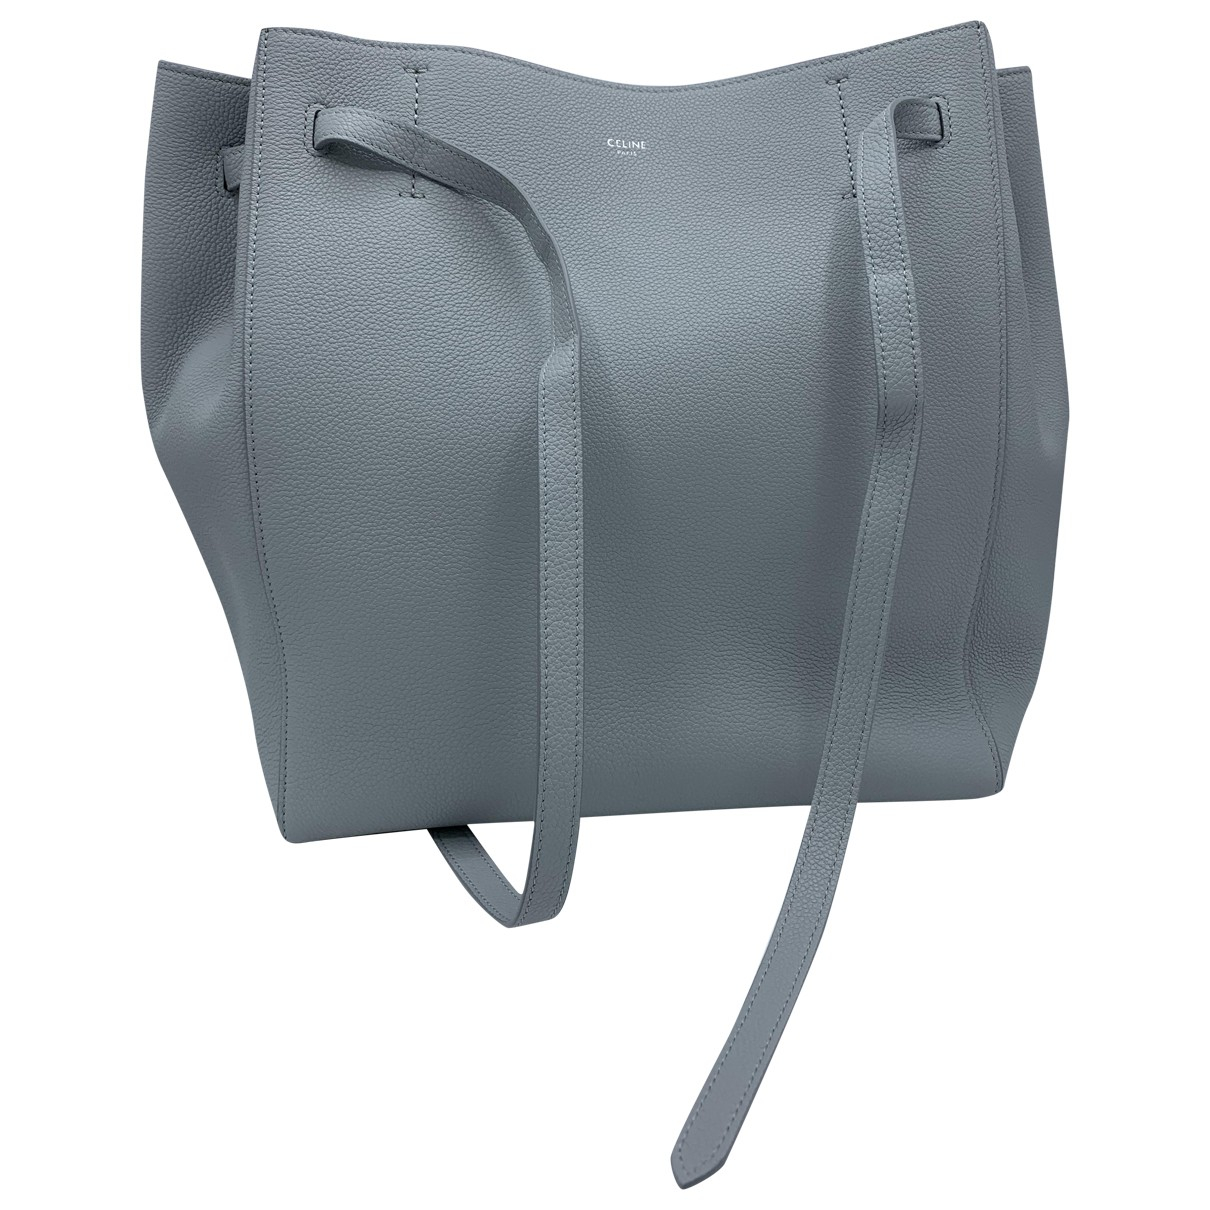 Celine Cabas Phantom Grey Leather handbag for Women \N